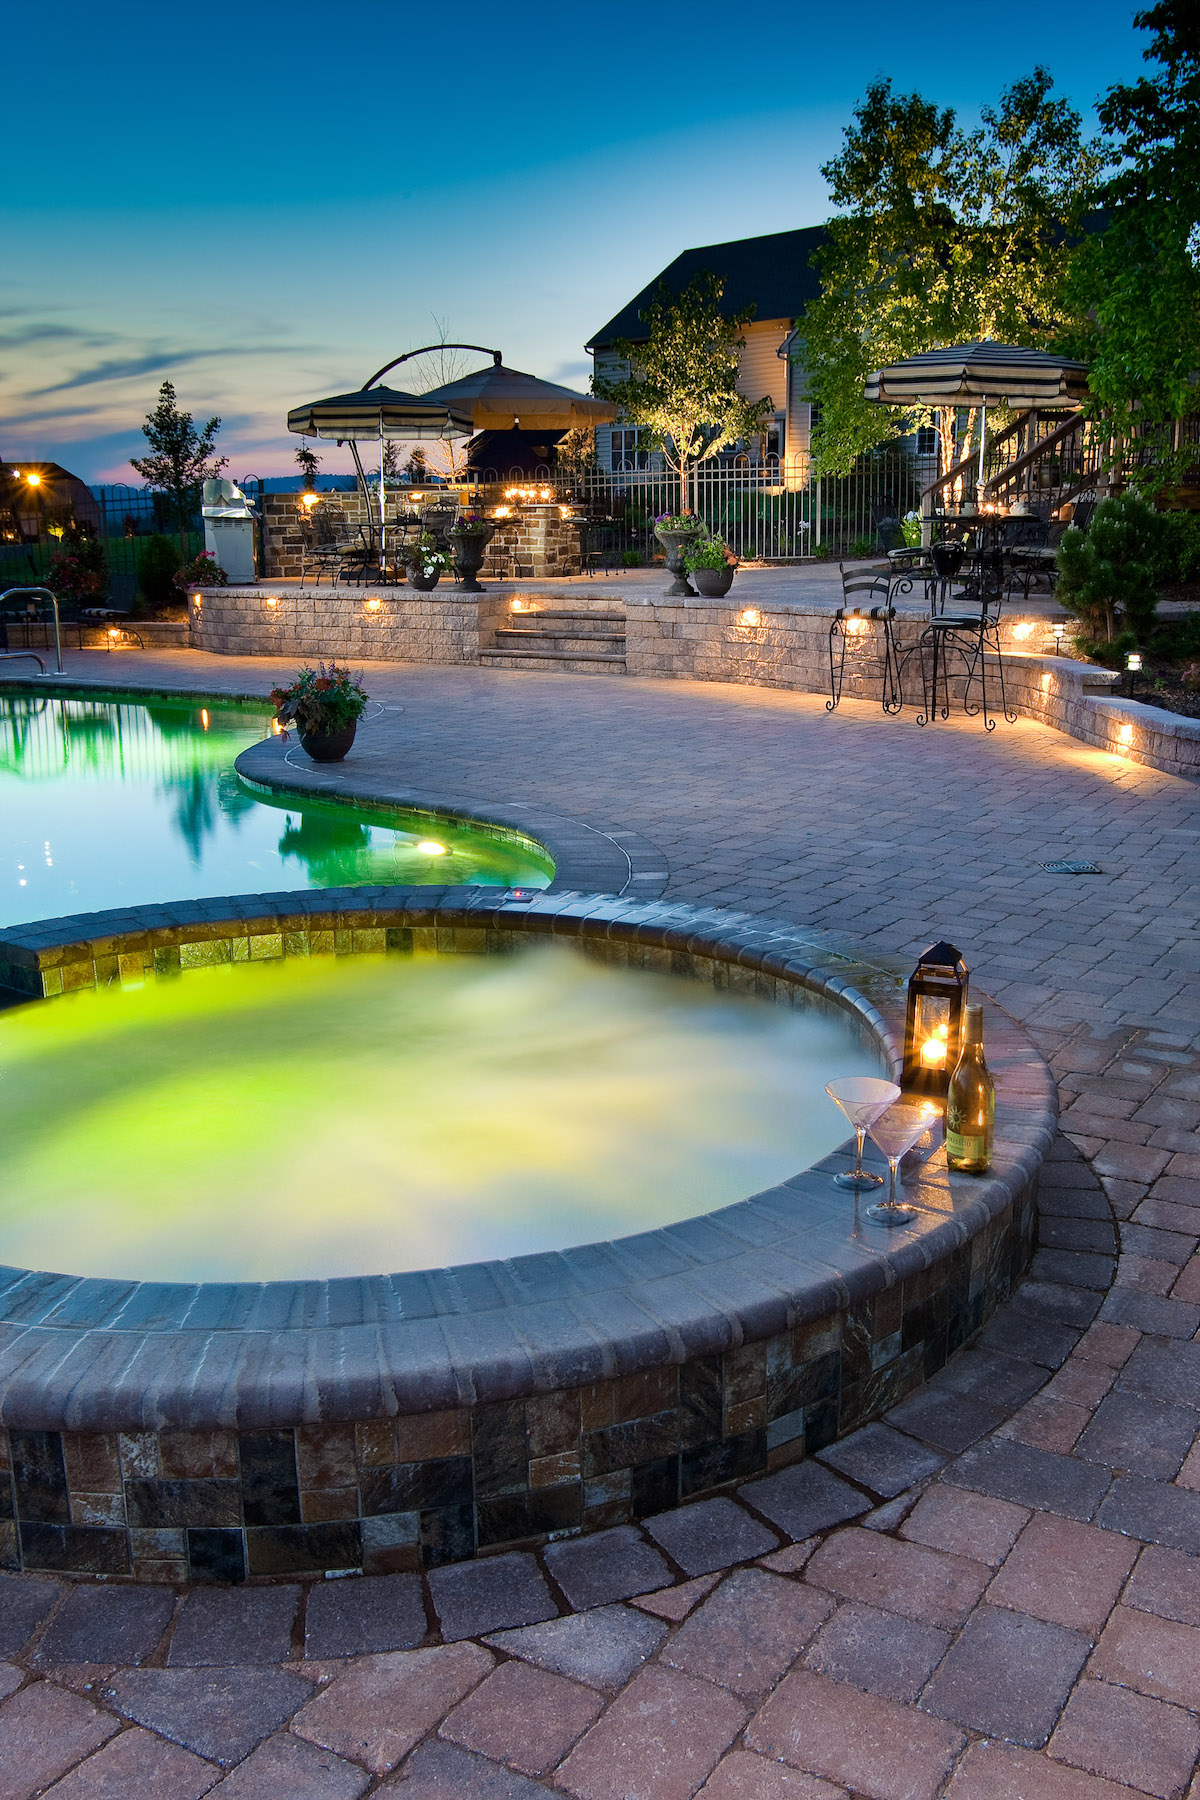 Hot Tubs or a Hot Mess? Incorporating a Spa into Your Landscape Design